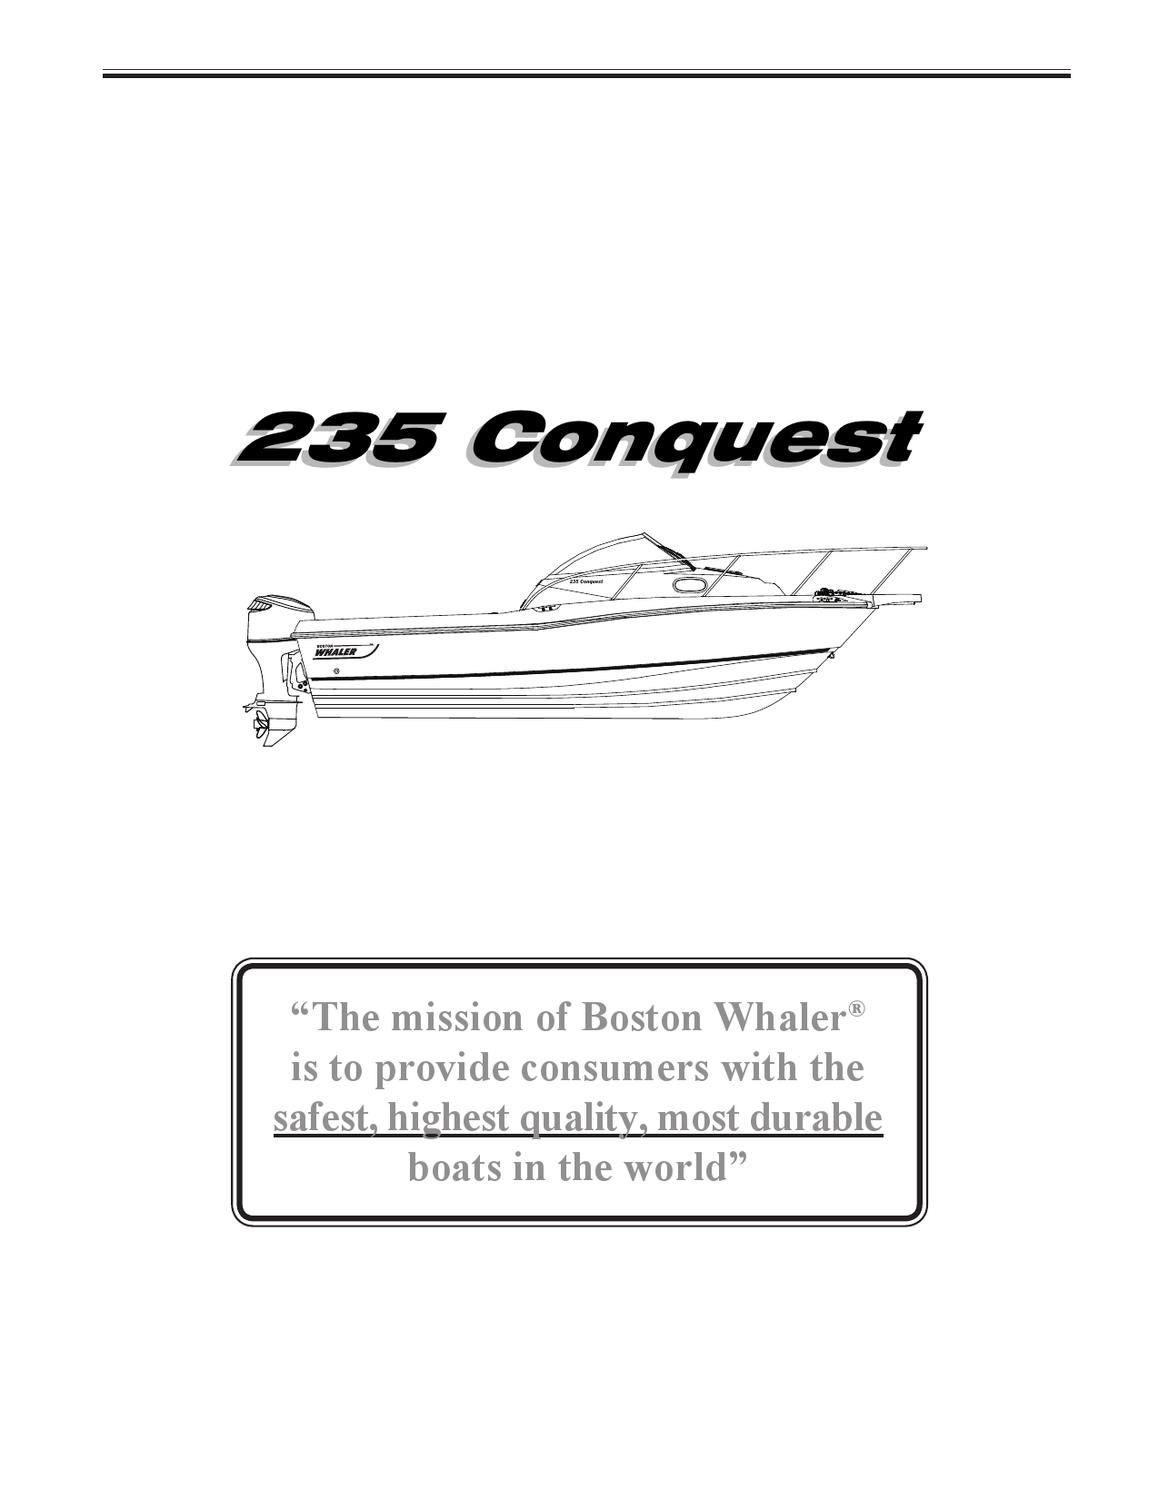 boston whaler 235 conquest by GARZON STUDIO - issuu